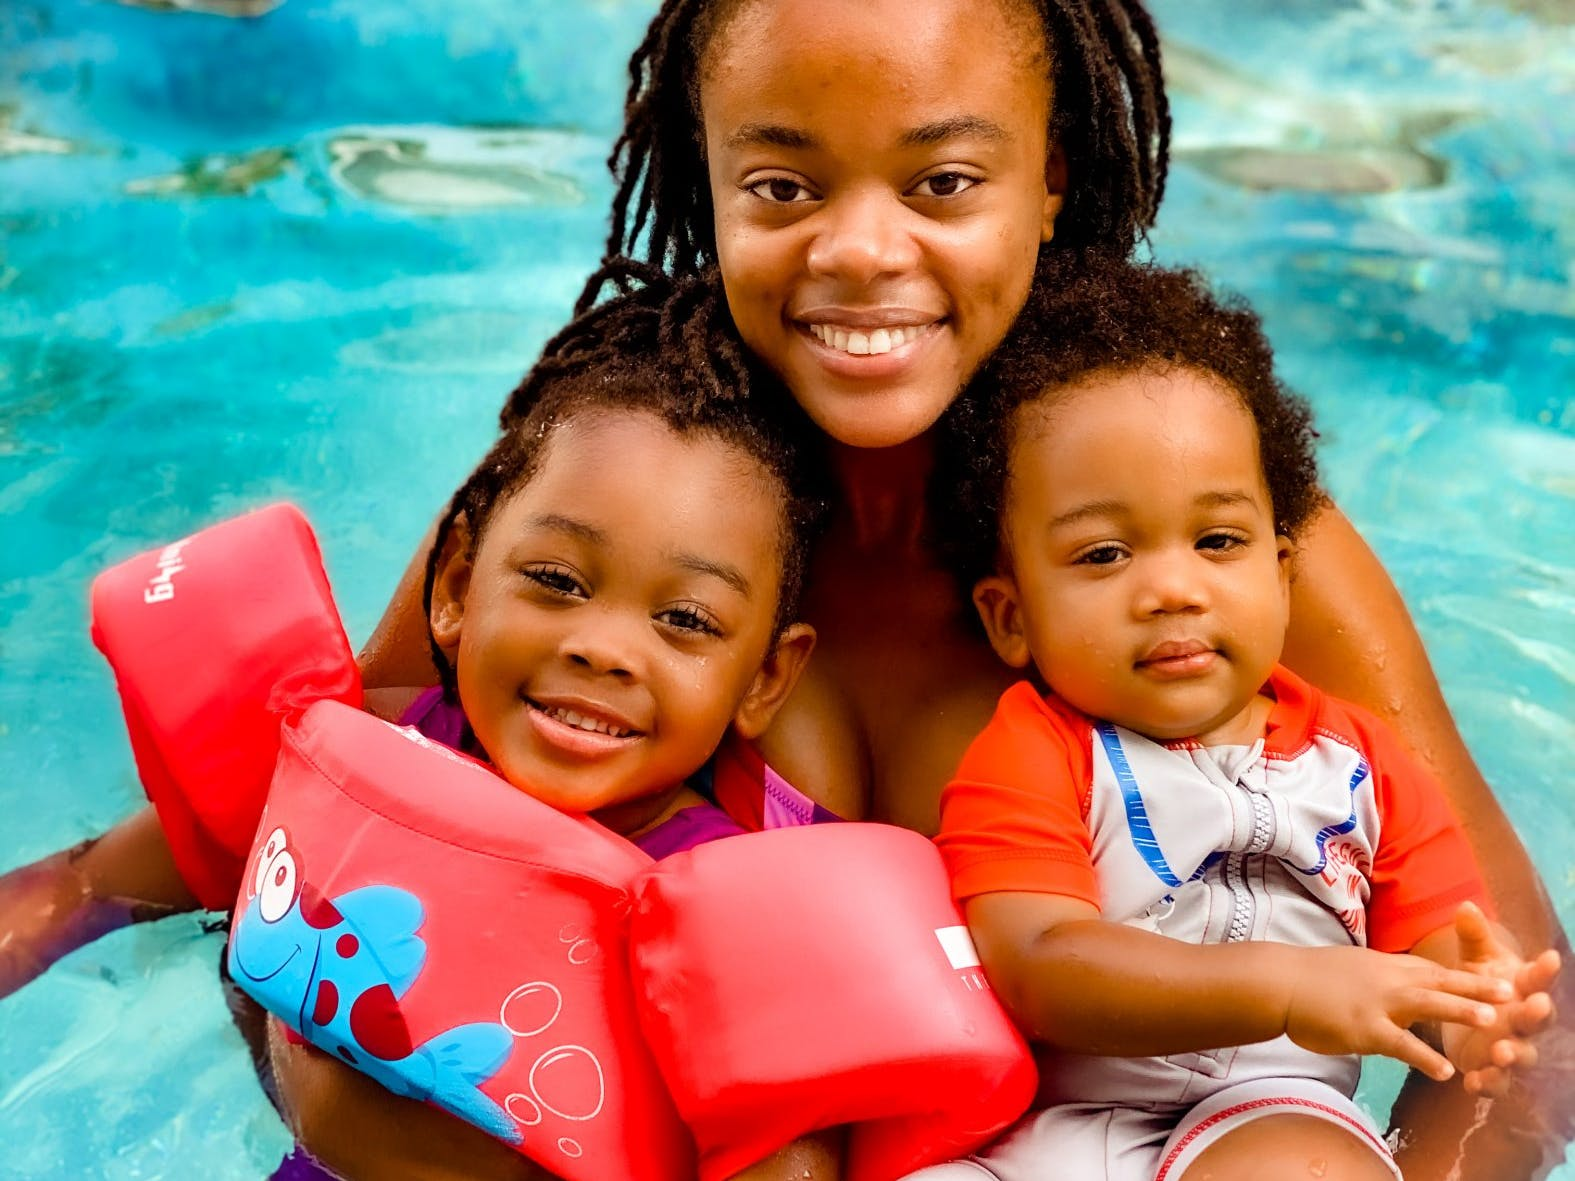 Victoria Graham and her two children swim in the private pool of their vacation rental